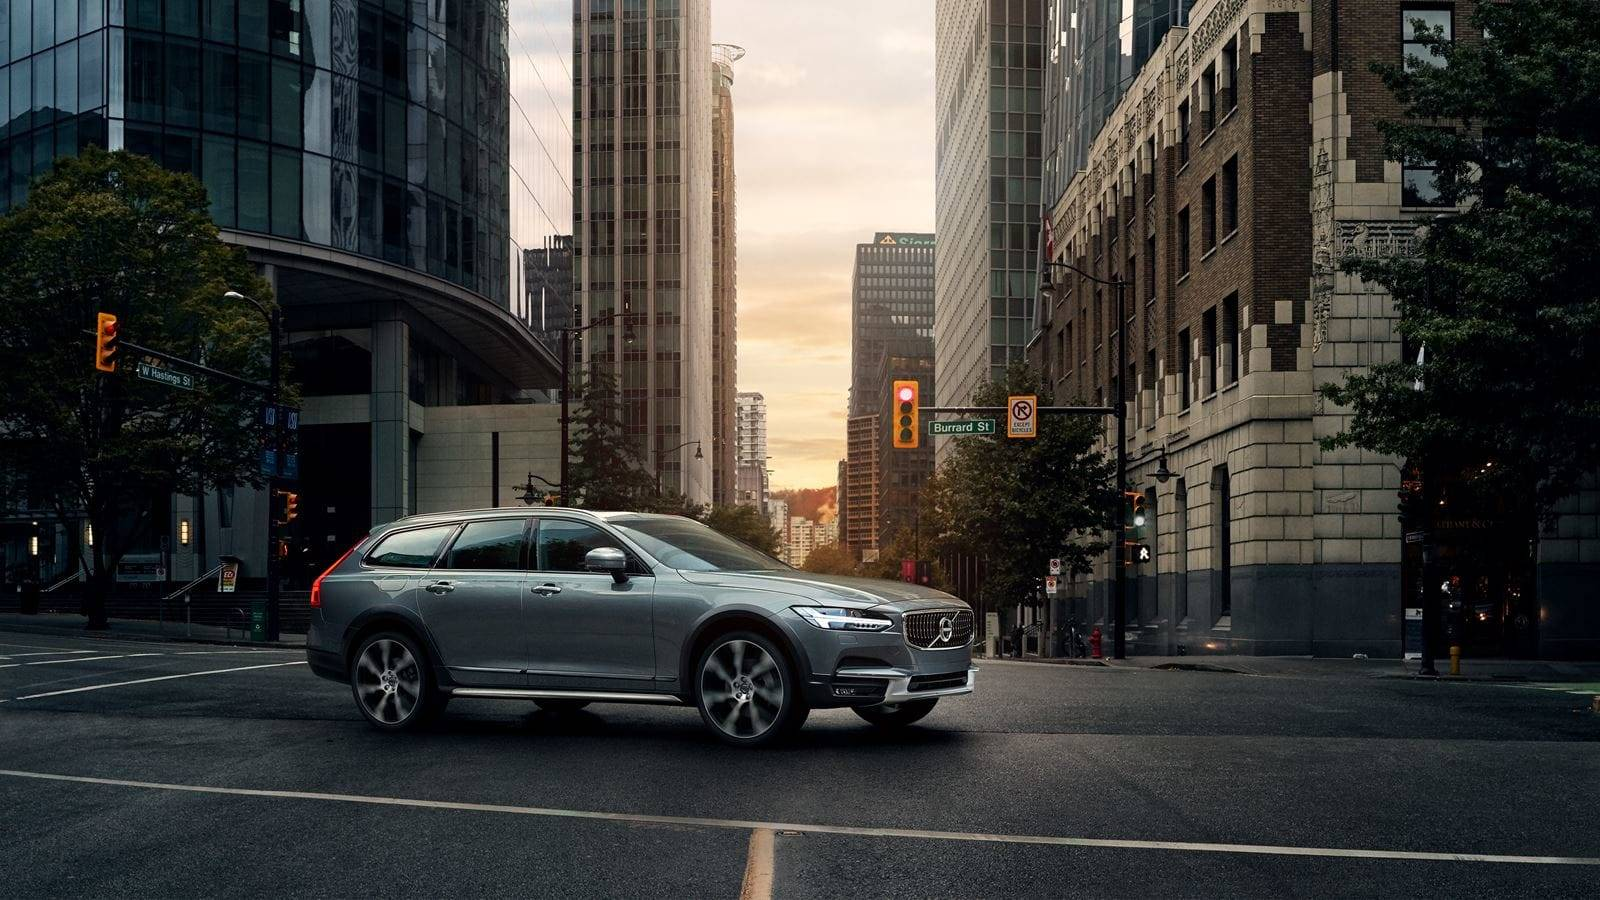 v90-crosscountry-gallery-05